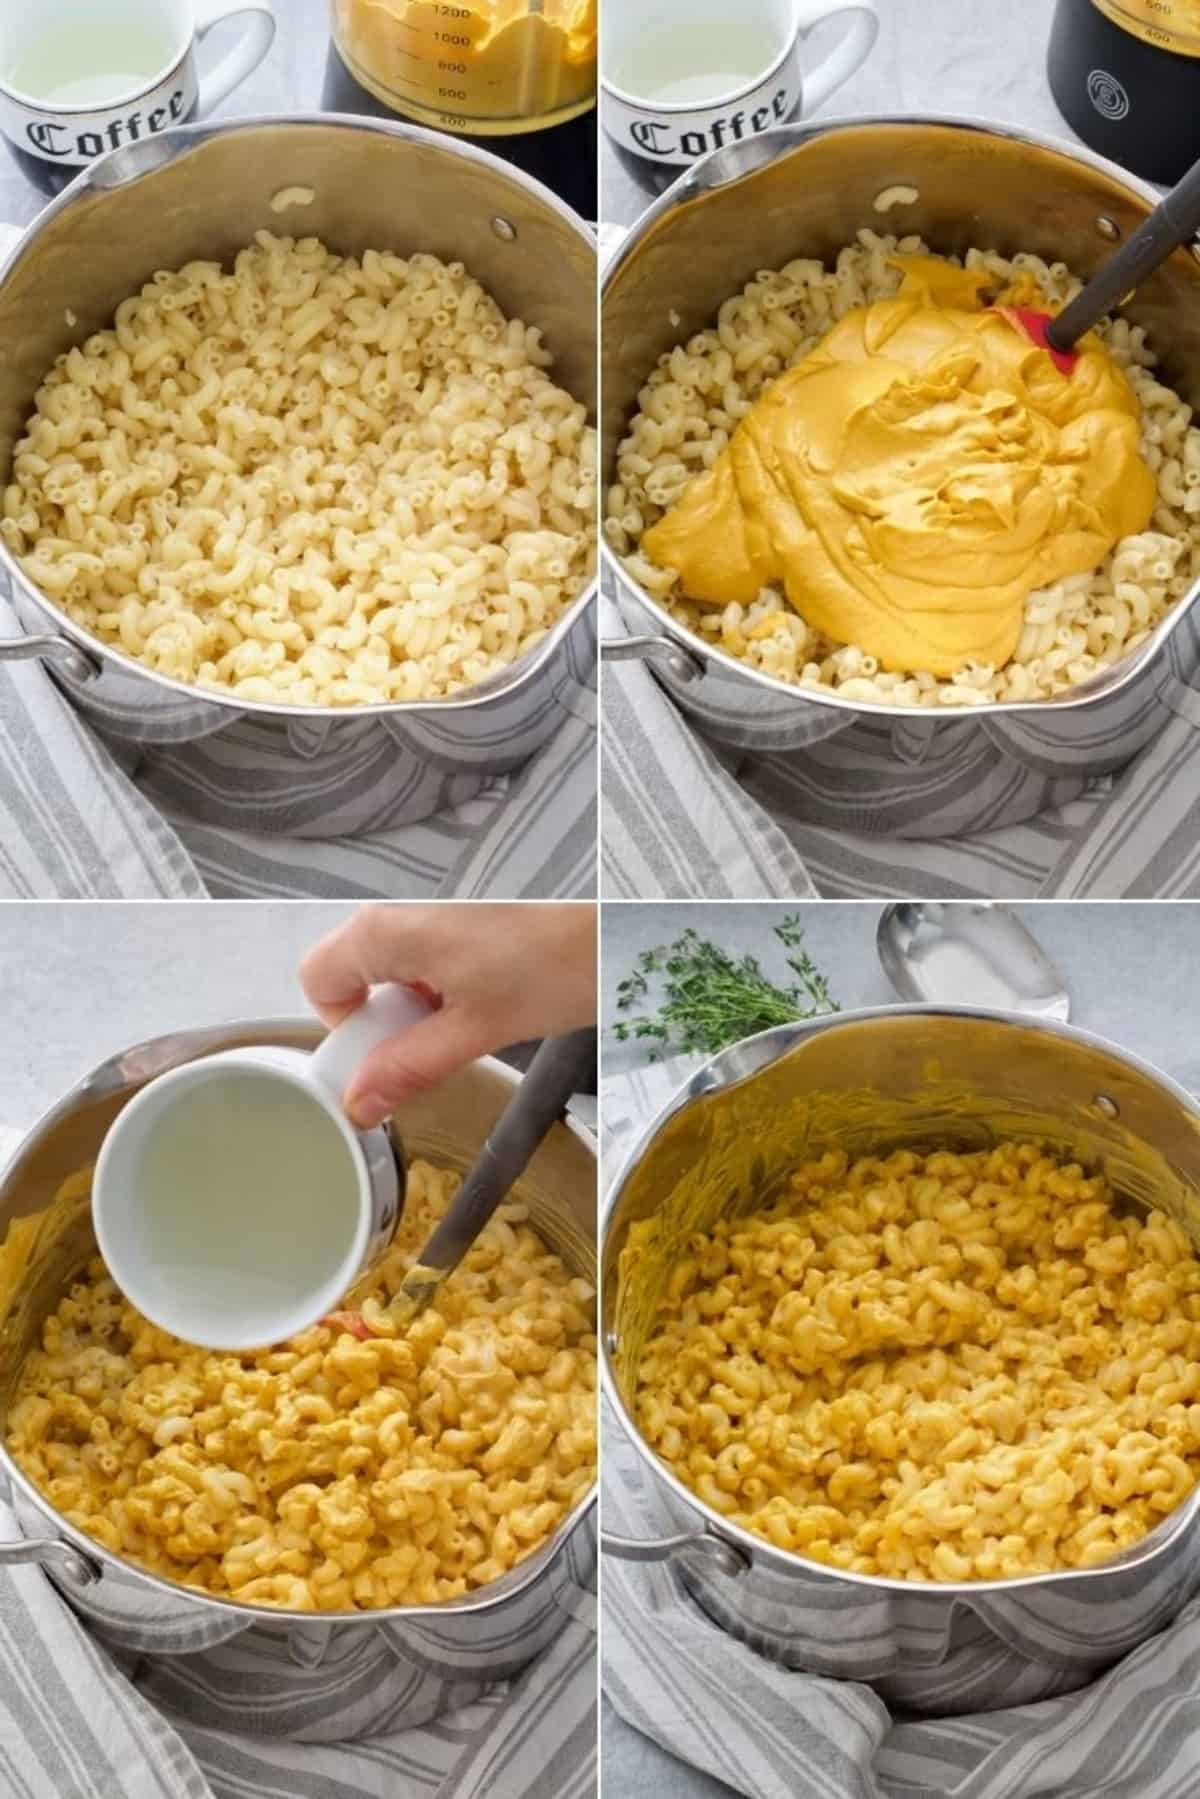 Process of mixing sauce with pasta.